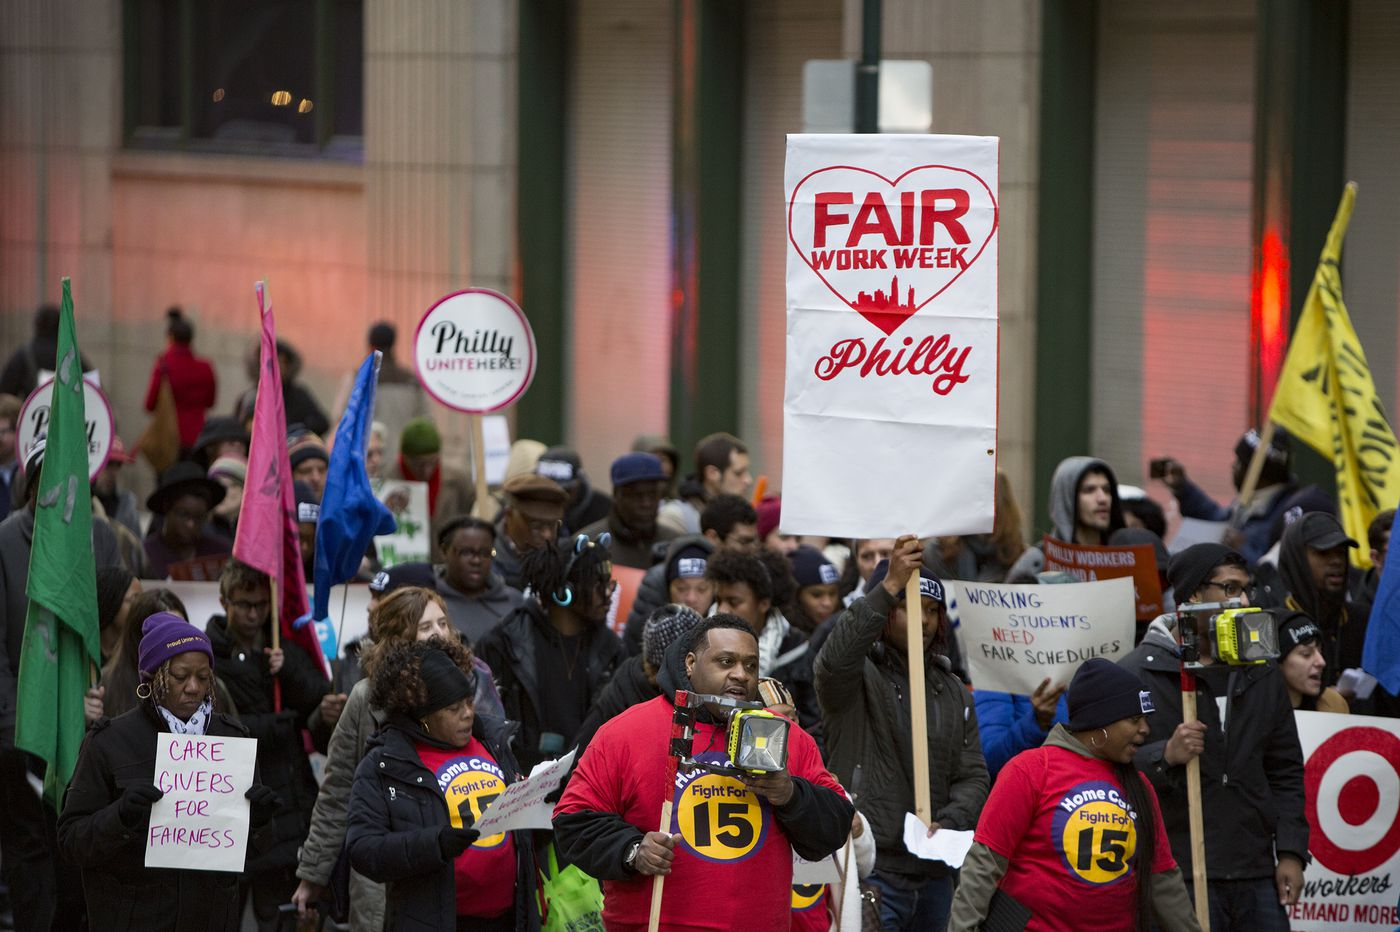 Common-sense changes to make Philly's Fair Workweek law truly fair | Opinion